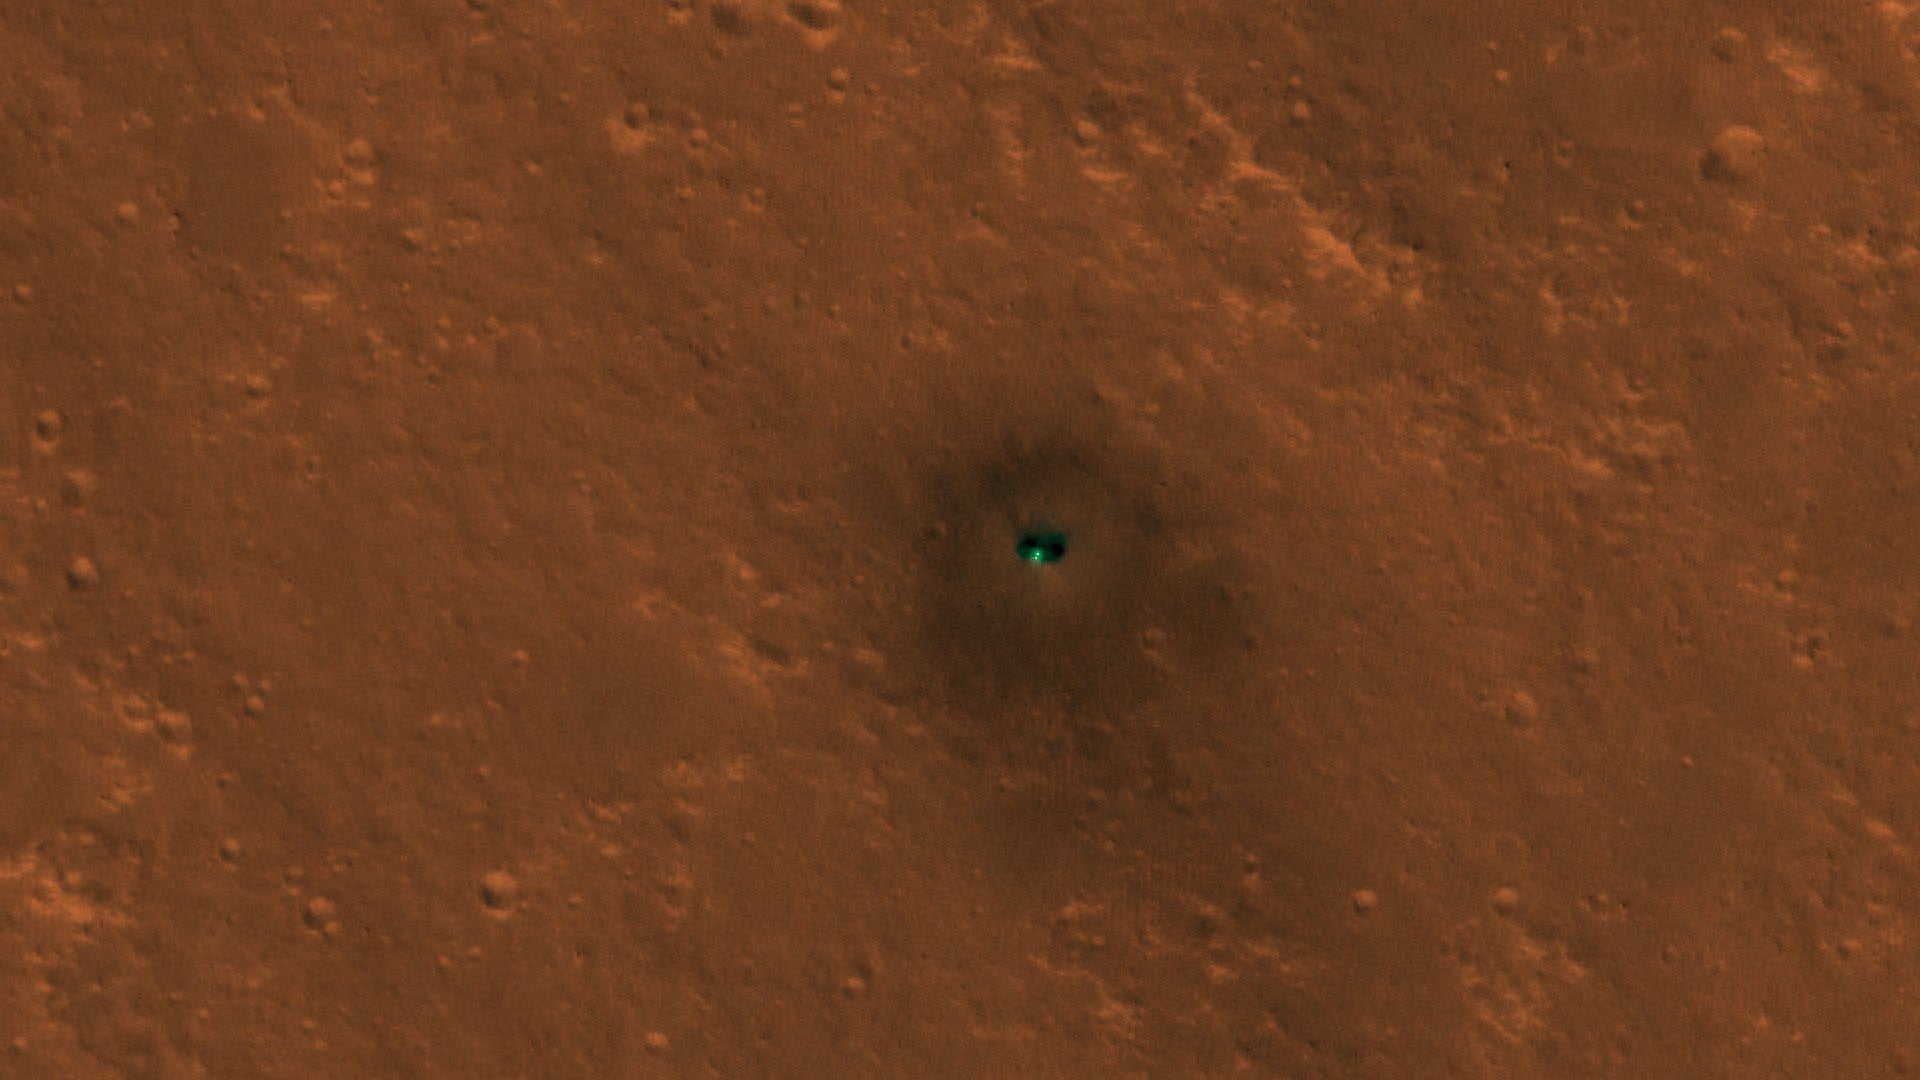 Martian Satellite Spots NASA's InSight Lander From Space